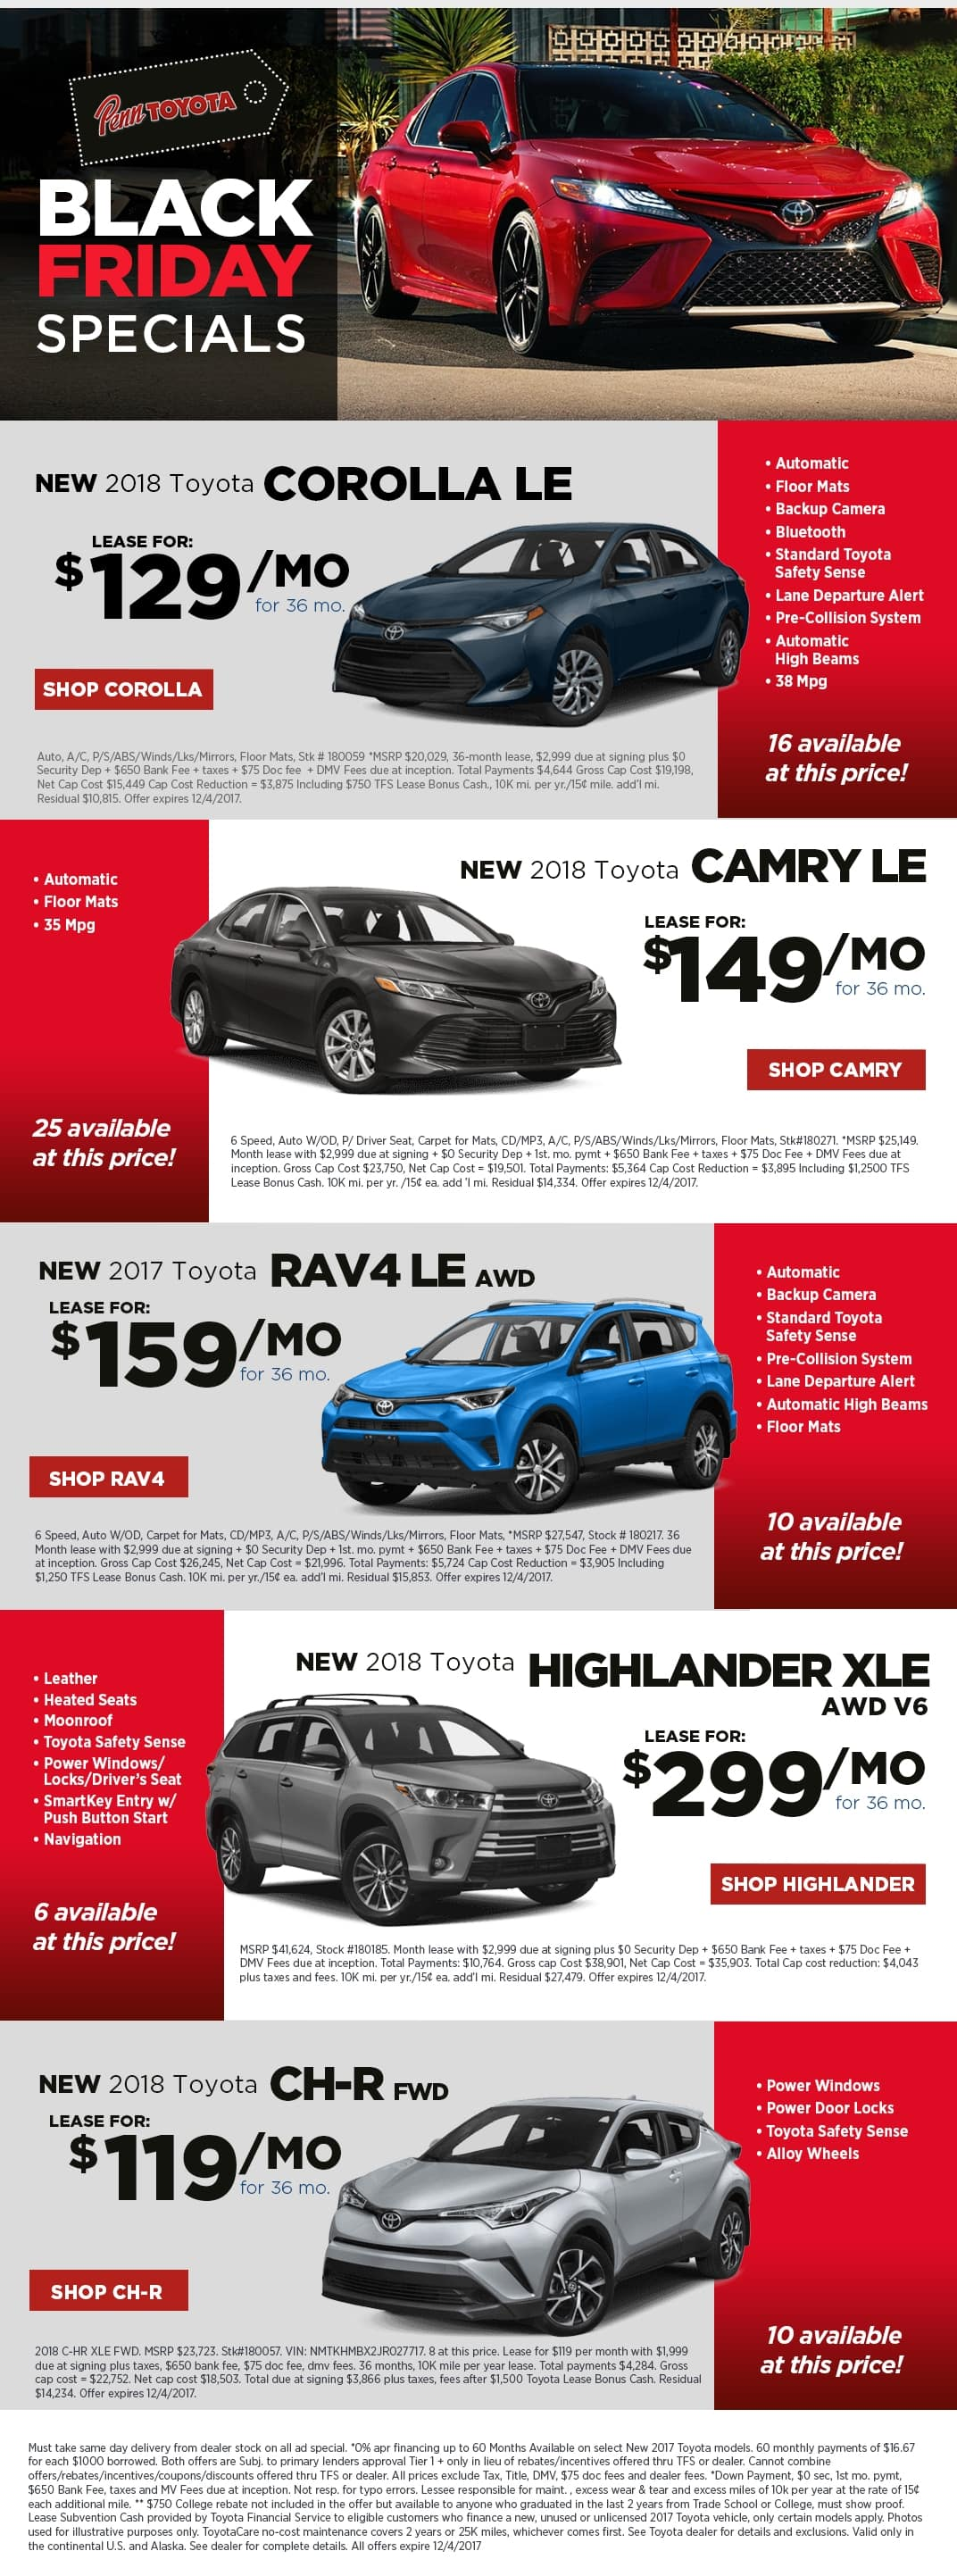 lease corolla and camry lakewood twl loyalty toyota loyaltyprogram